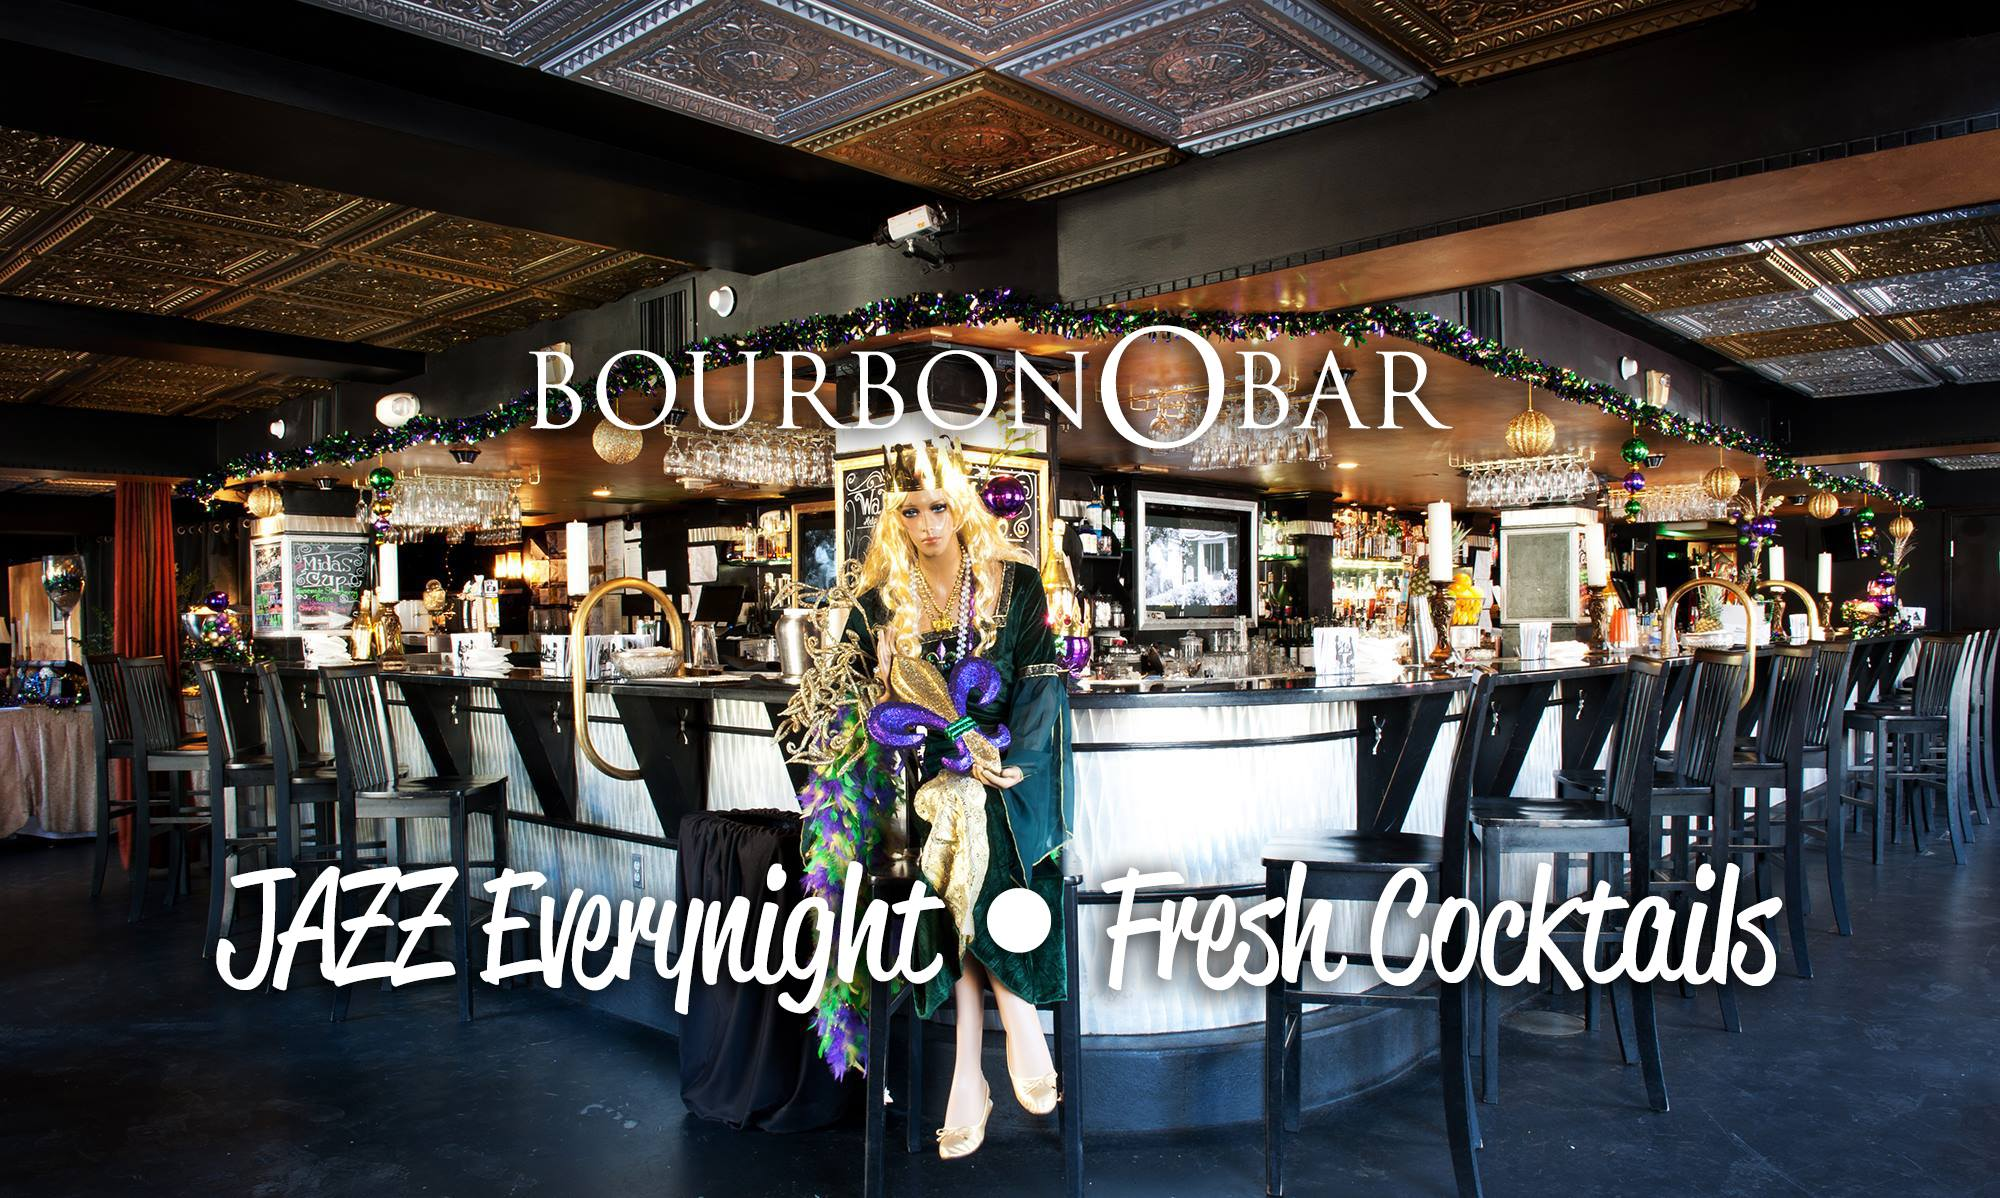 The Leroy Marshall Band - Bourbon O Bar at The Bourbon Orleans